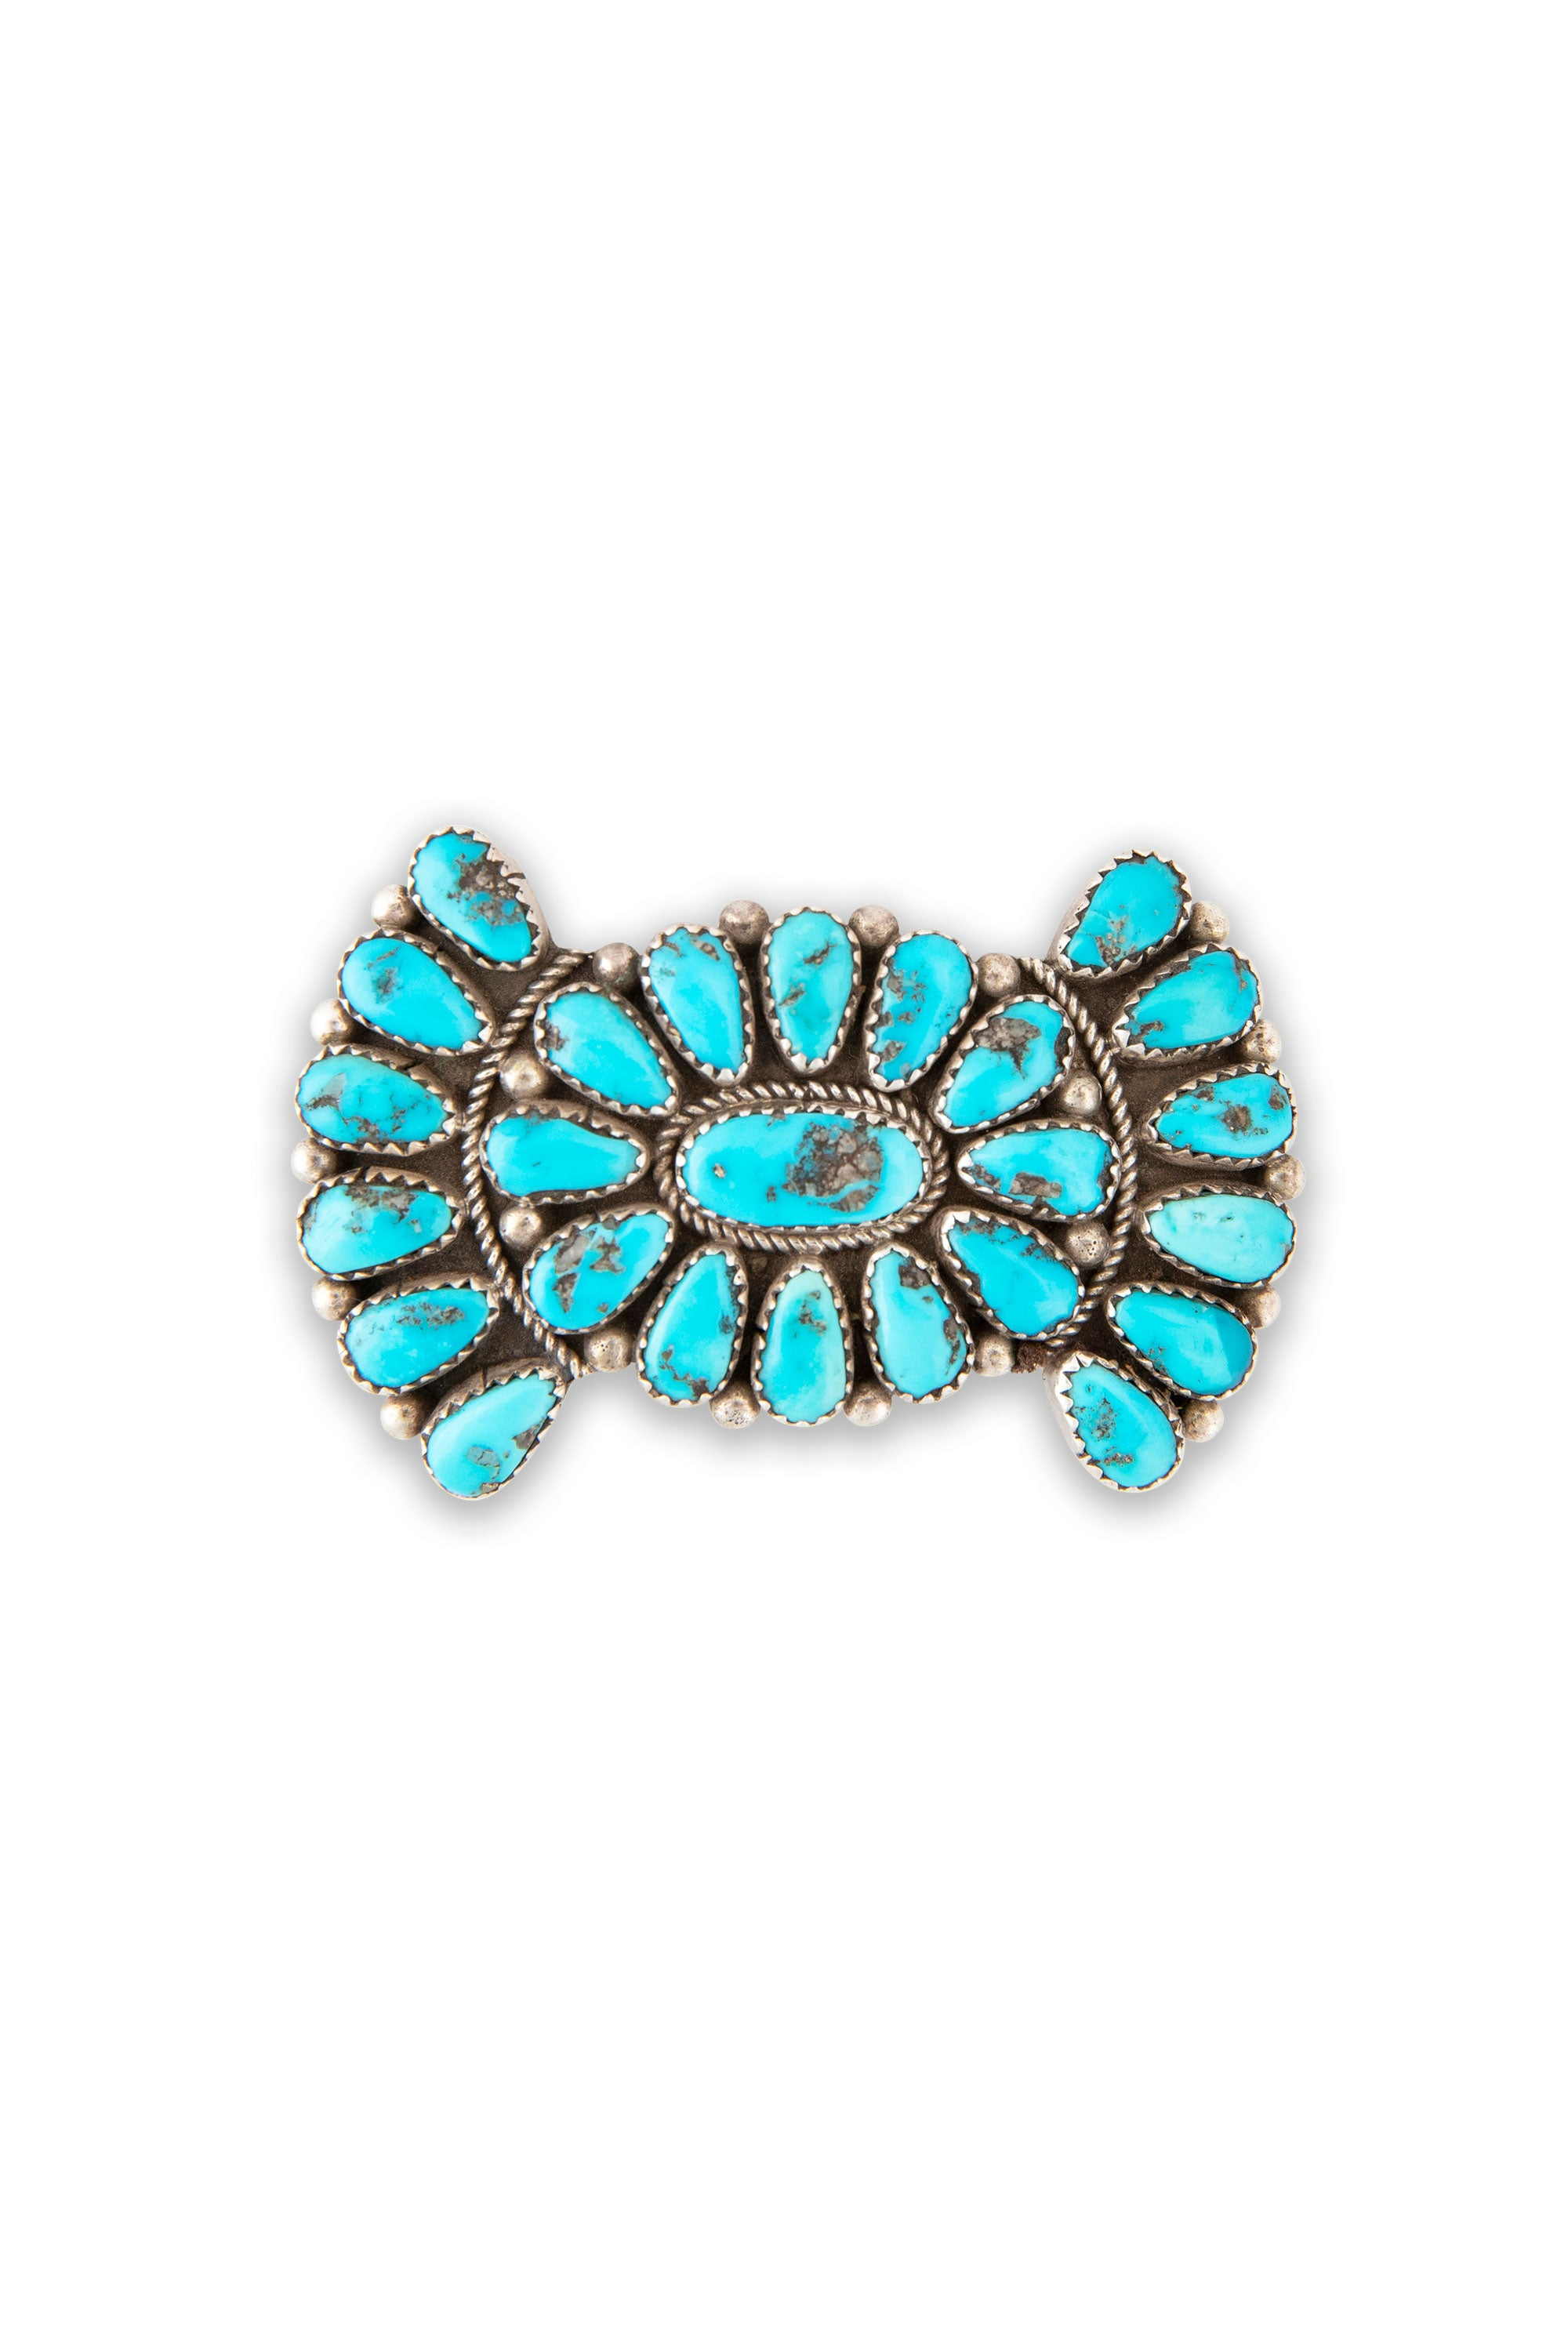 Pin, Cluster, Turquoise, Bowtie, Hallmark, Old Pawn, 290